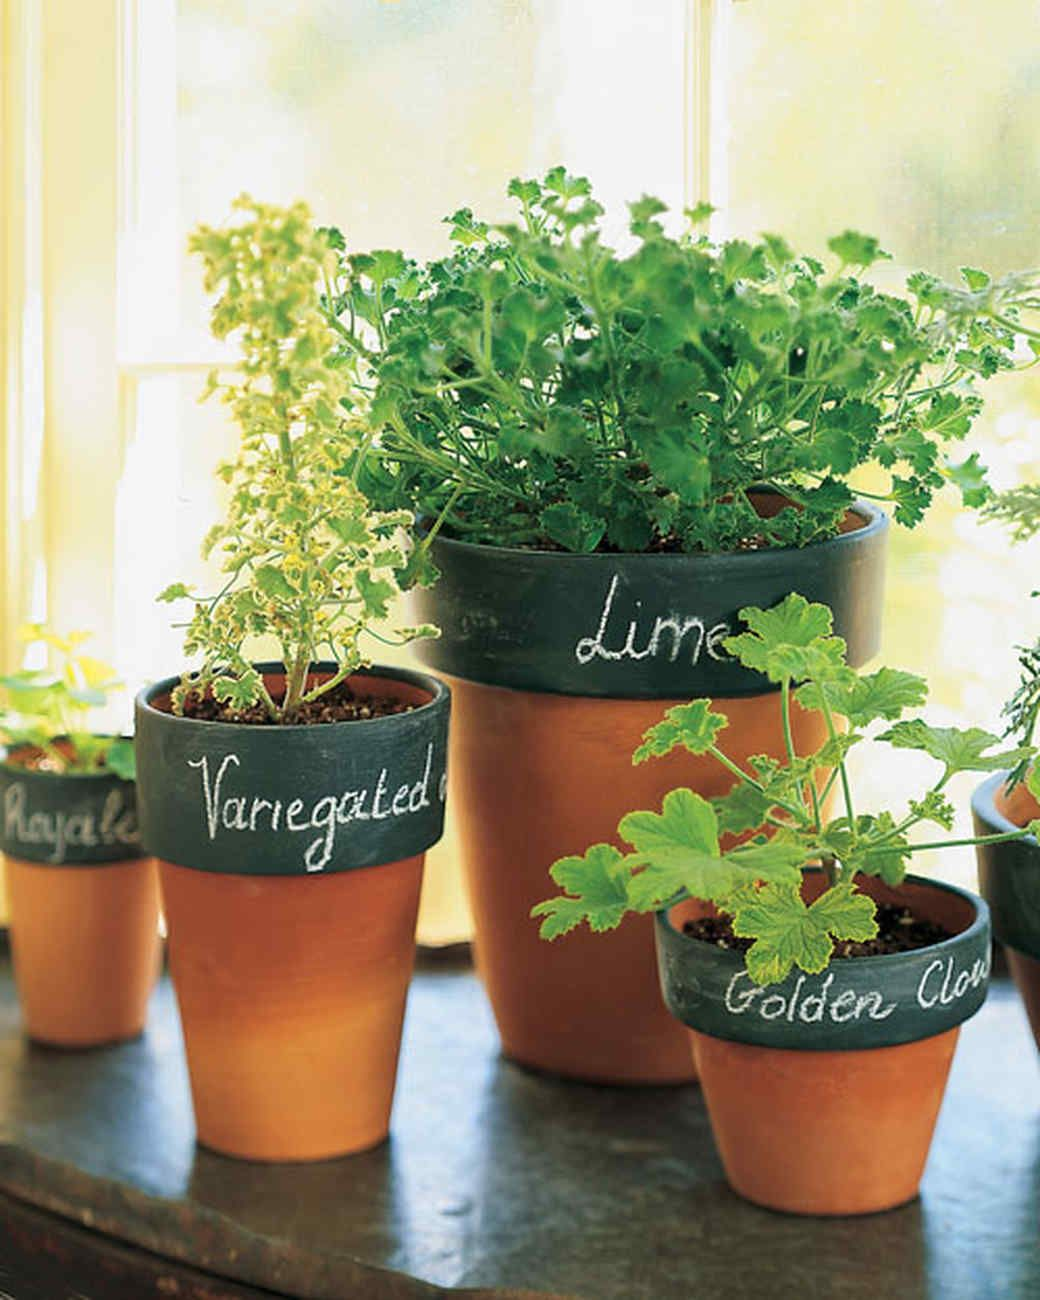 12 ways to personalize terra cotta pots dressing potted herbs